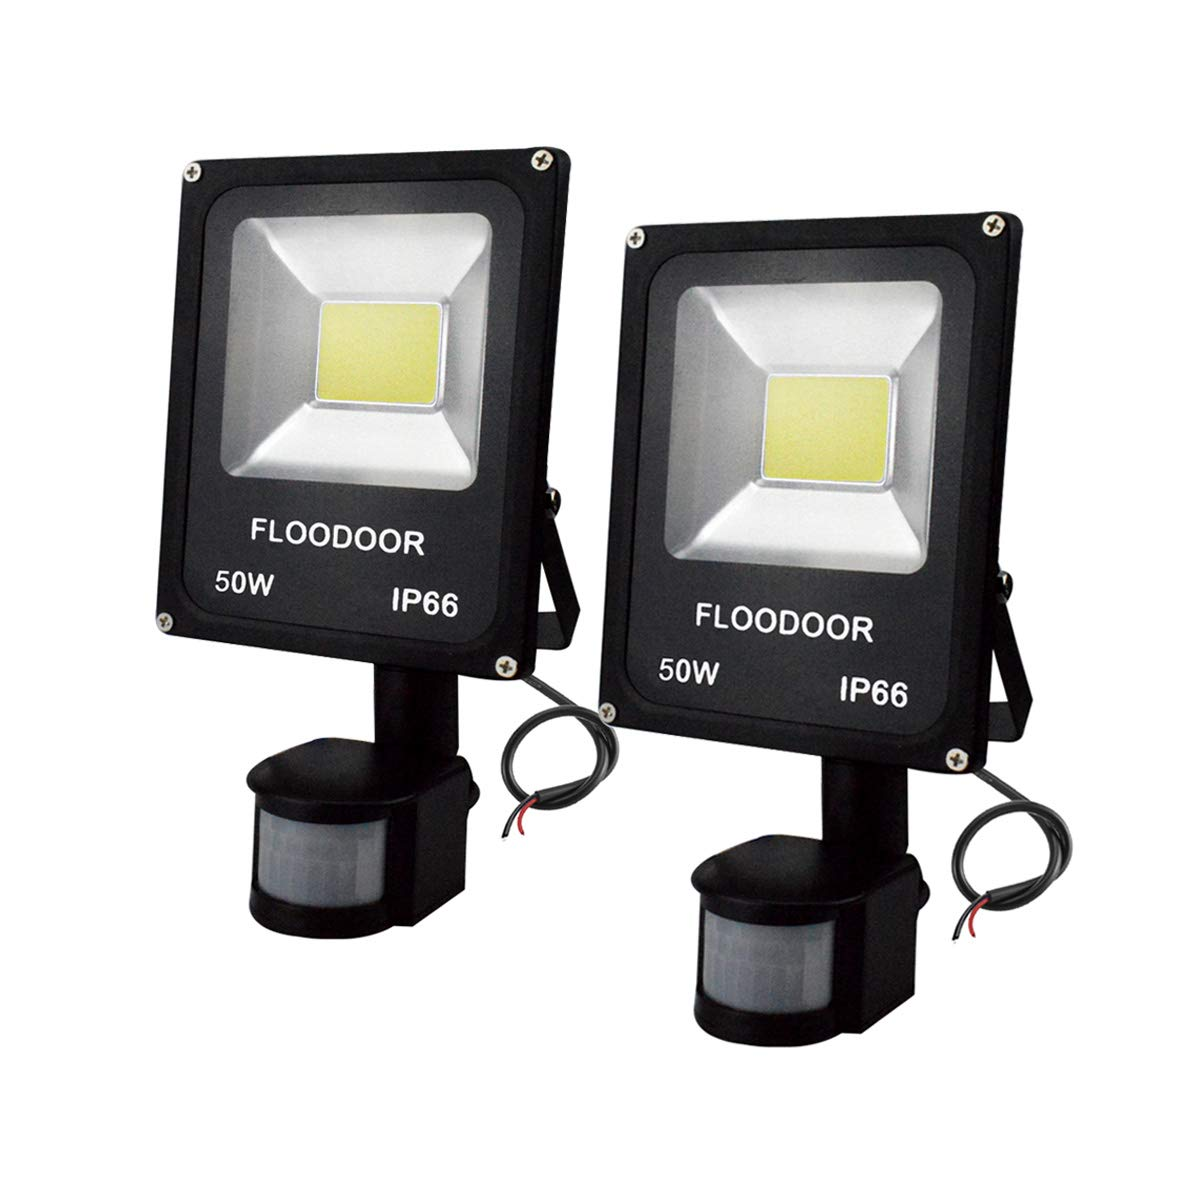 FLOODOOR Motion Sensor Lights 50W 12-60V AC/DC Outdoor Flood Light IP66 Safety Waterproof Daylight White, COB Lamp Bead,6000K 4500LM Security Wall Light for Garage Street Guardrail(2 Pack)